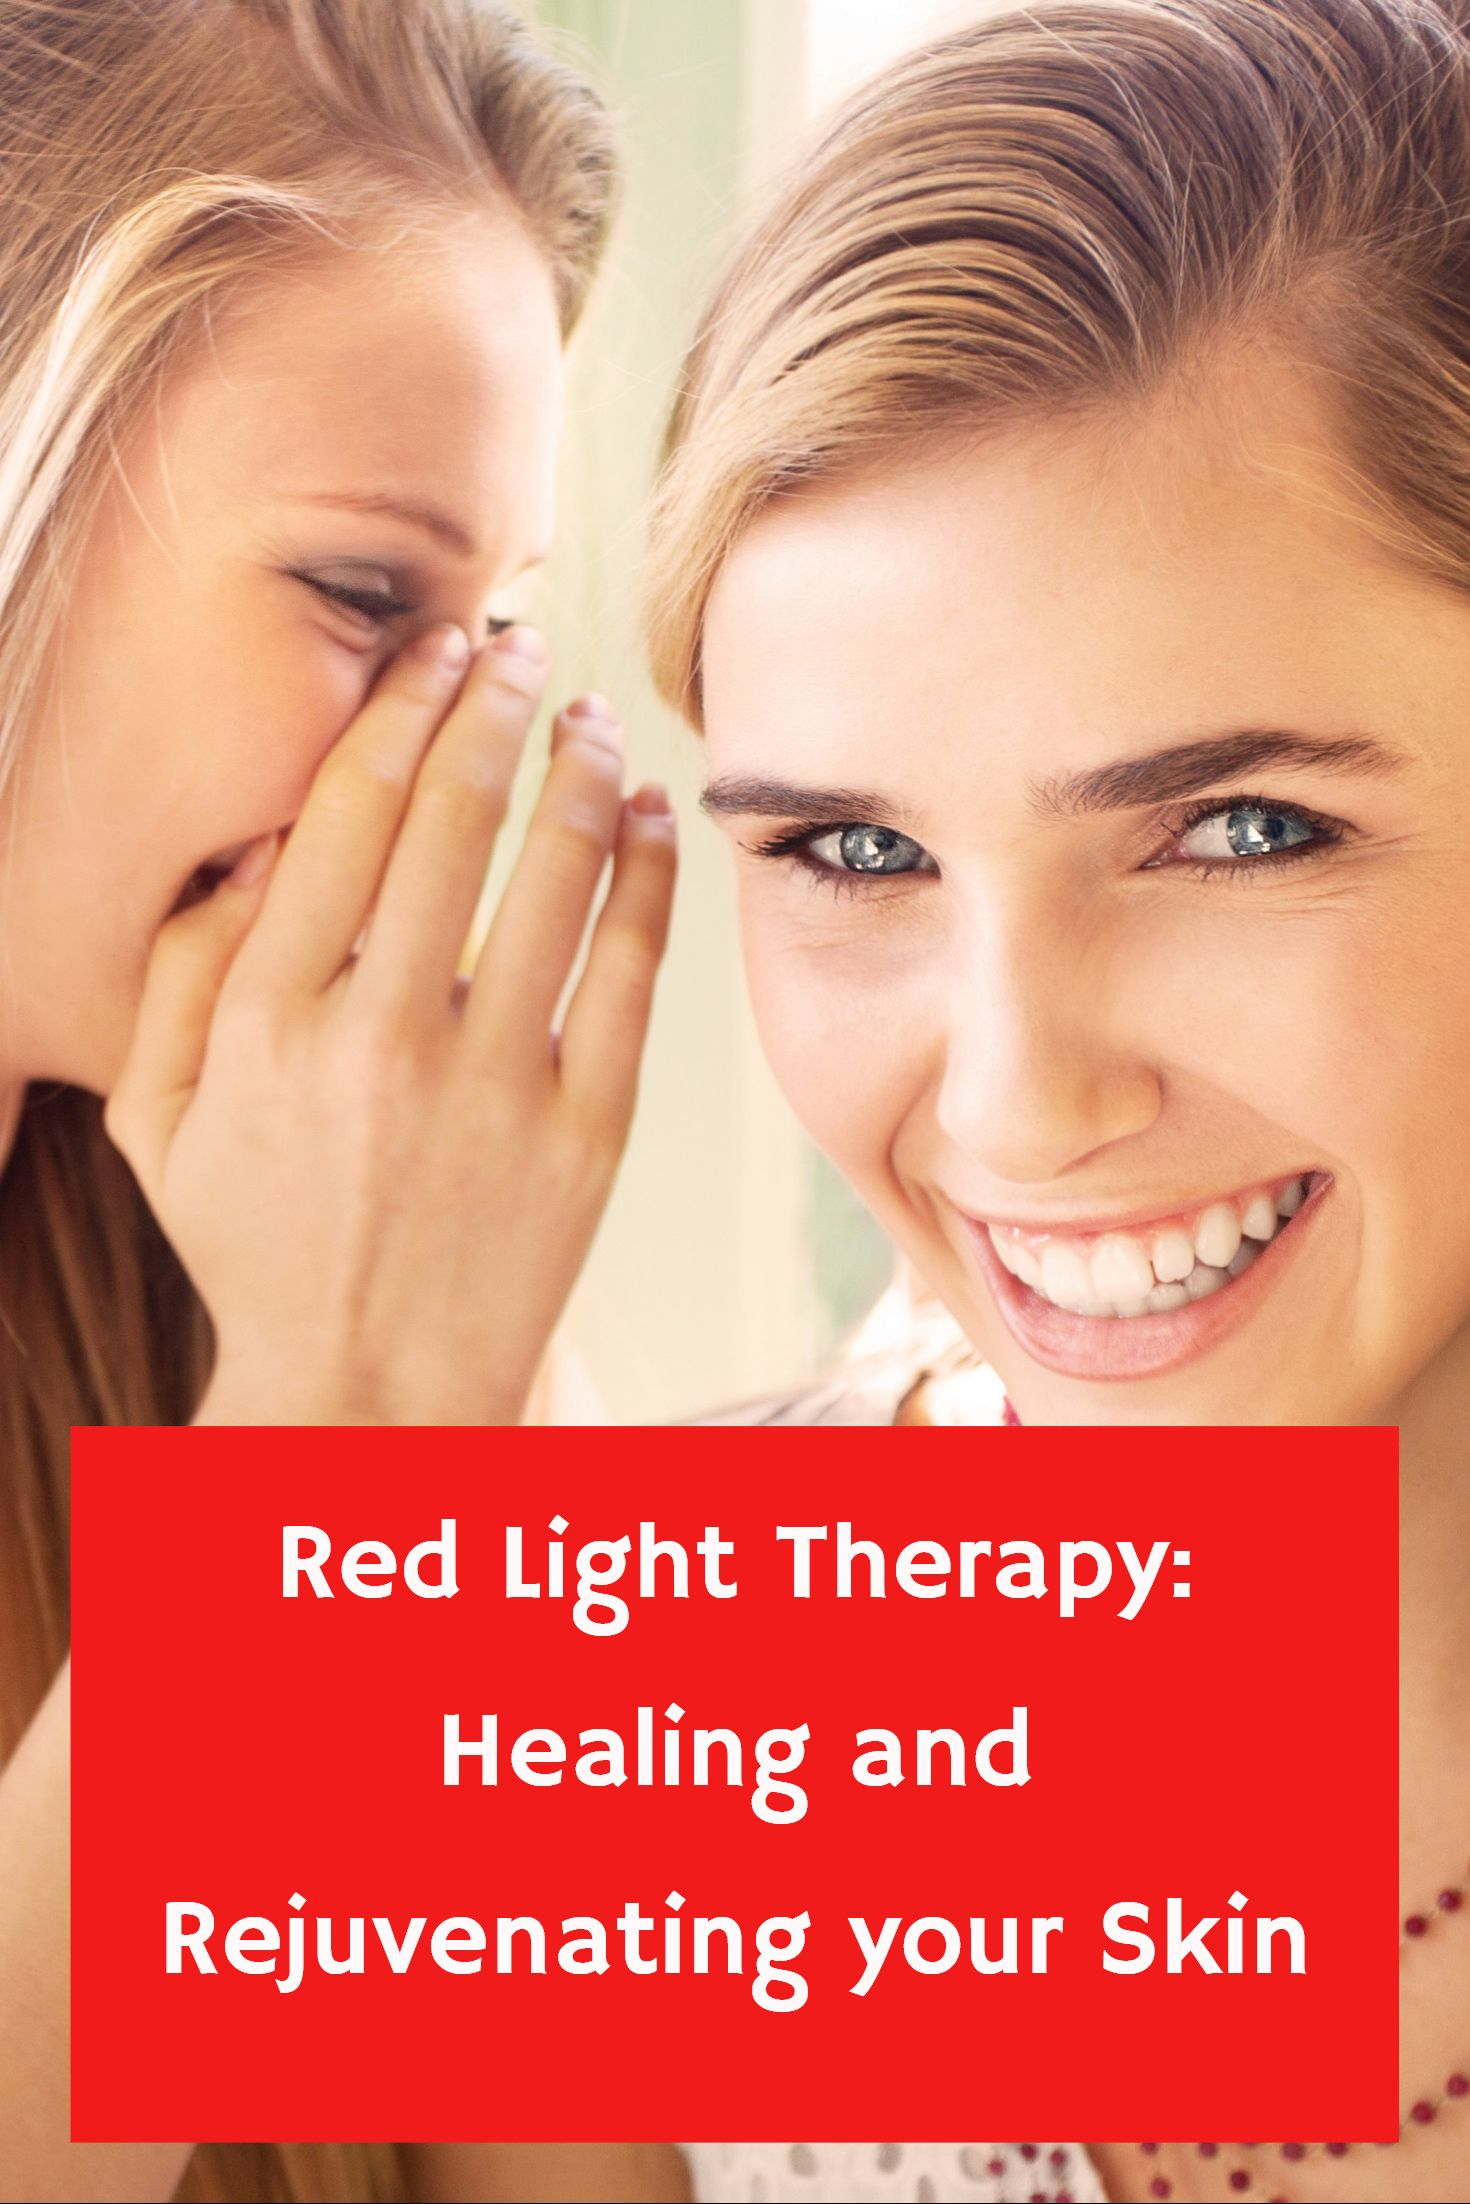 Red Light Therapy: Healing And Rejuvenating Your Skin